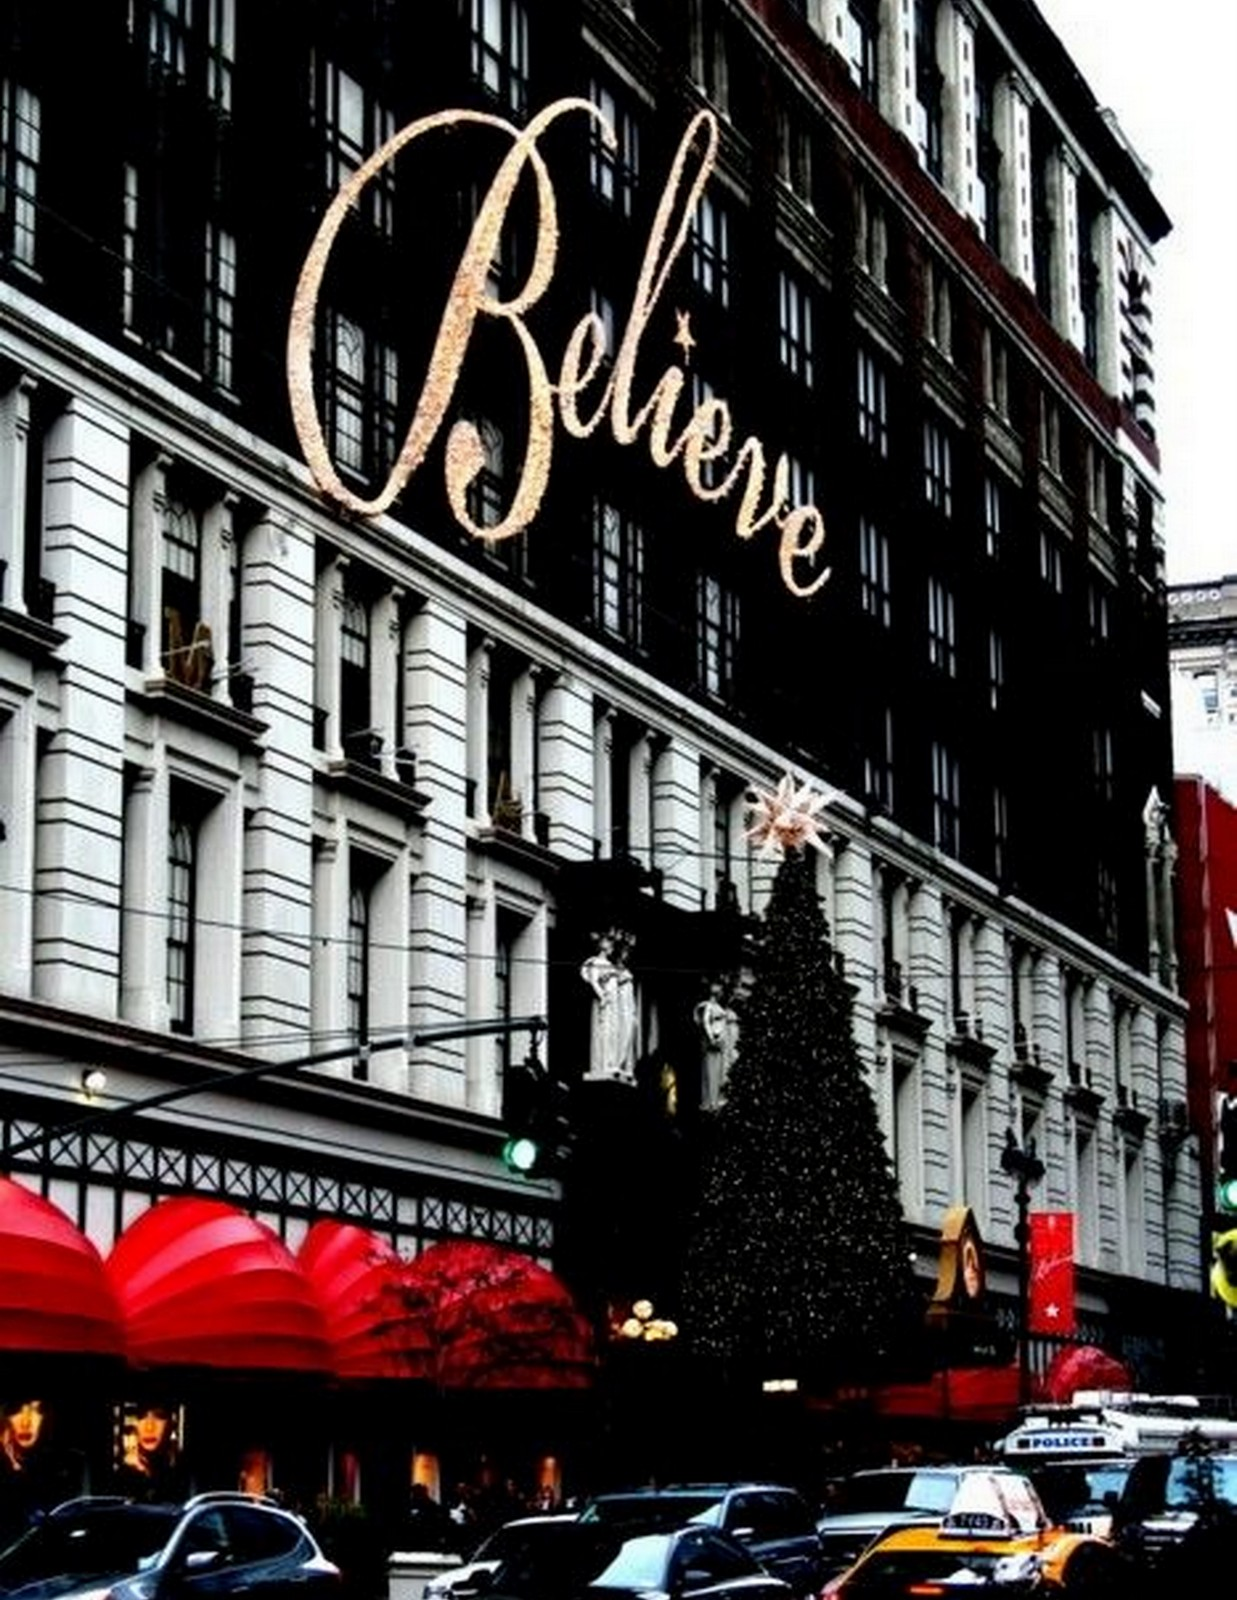 Believe :: Christmas at Macys' in NY :: House of Valentina